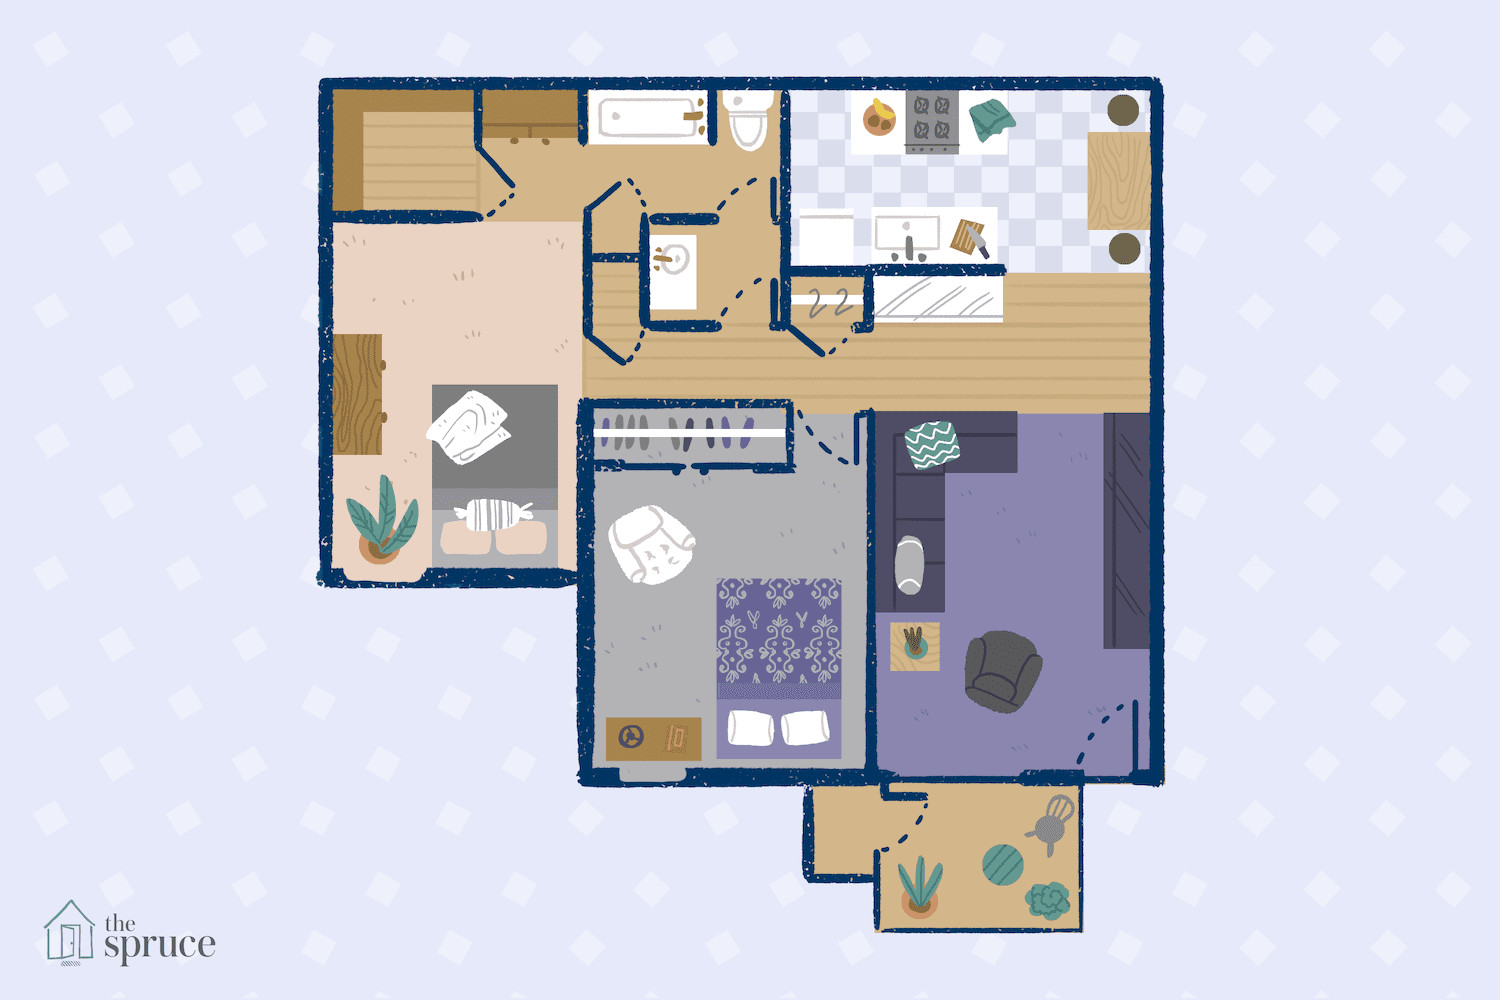 12x12 Bedroom Furniture Layout Unique Furniture Arrangement Ideas for A Small Living Room